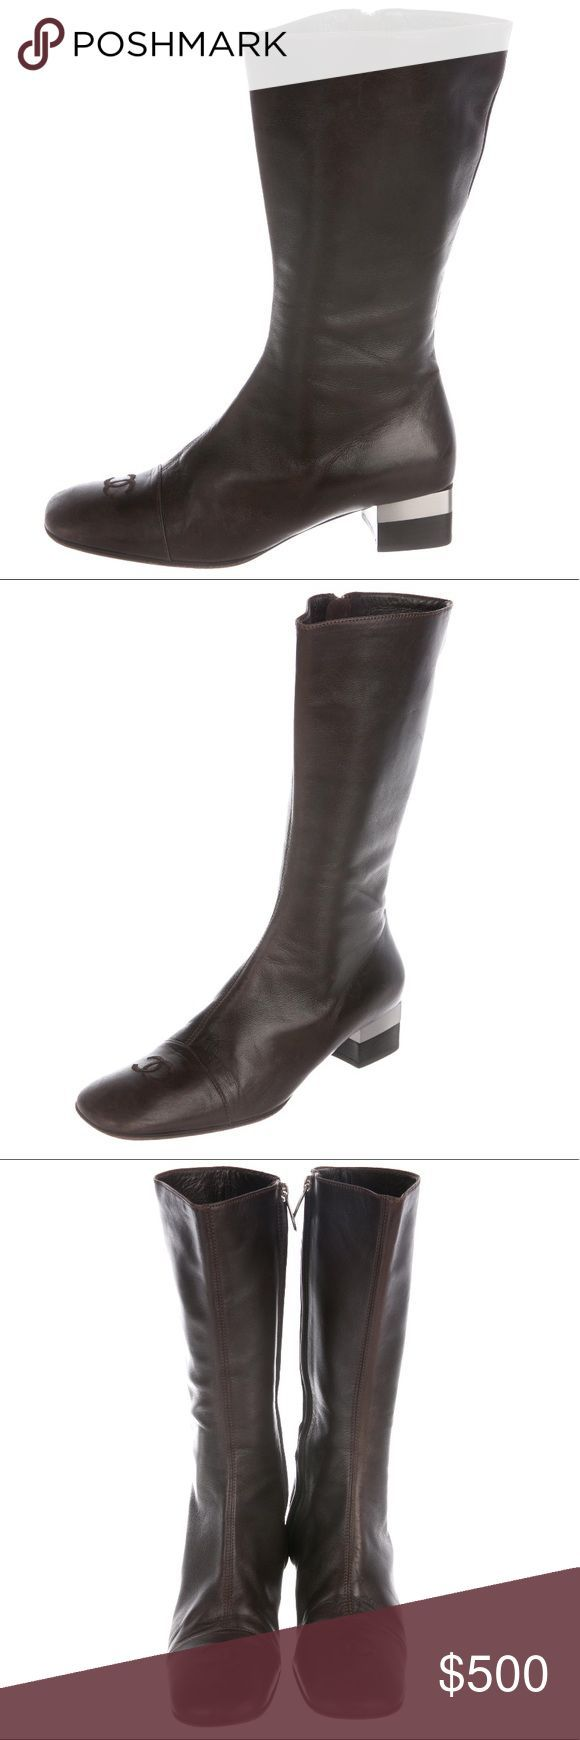 CHANEL HIGH LEATHER BOOTS These are a gorgeous pair of ? chocolatey colored C...,  CHANEL HIGH LEATHER BOOTS These are a gorgeous pair of ? chocolatey colored C...,